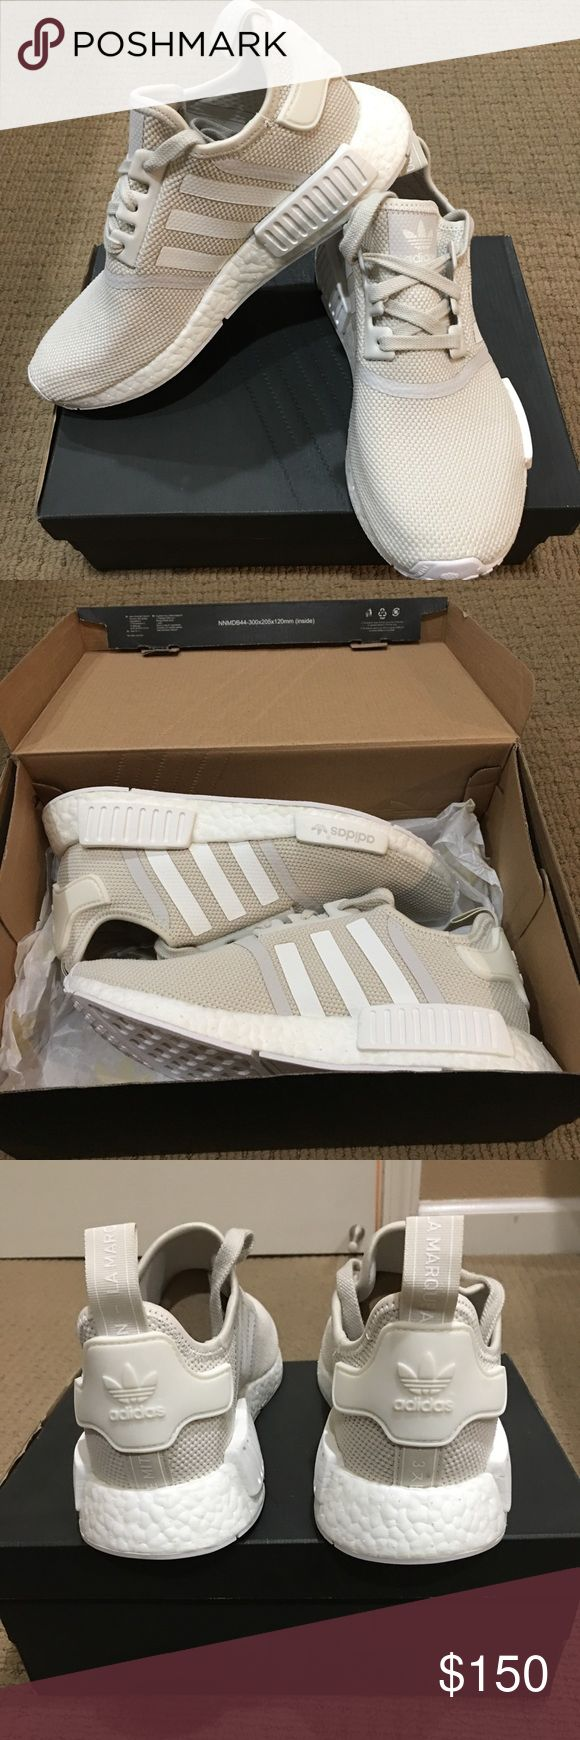 Brand New Adidas NMD R1 - Women's size 8 Brand new authentic Adidas NMD R1.  Never worn.  Color:  Off white.  Size: 8 Women's.  PRICE IS FIRM.   NO TRADES. adidas Shoes Athletic Shoes